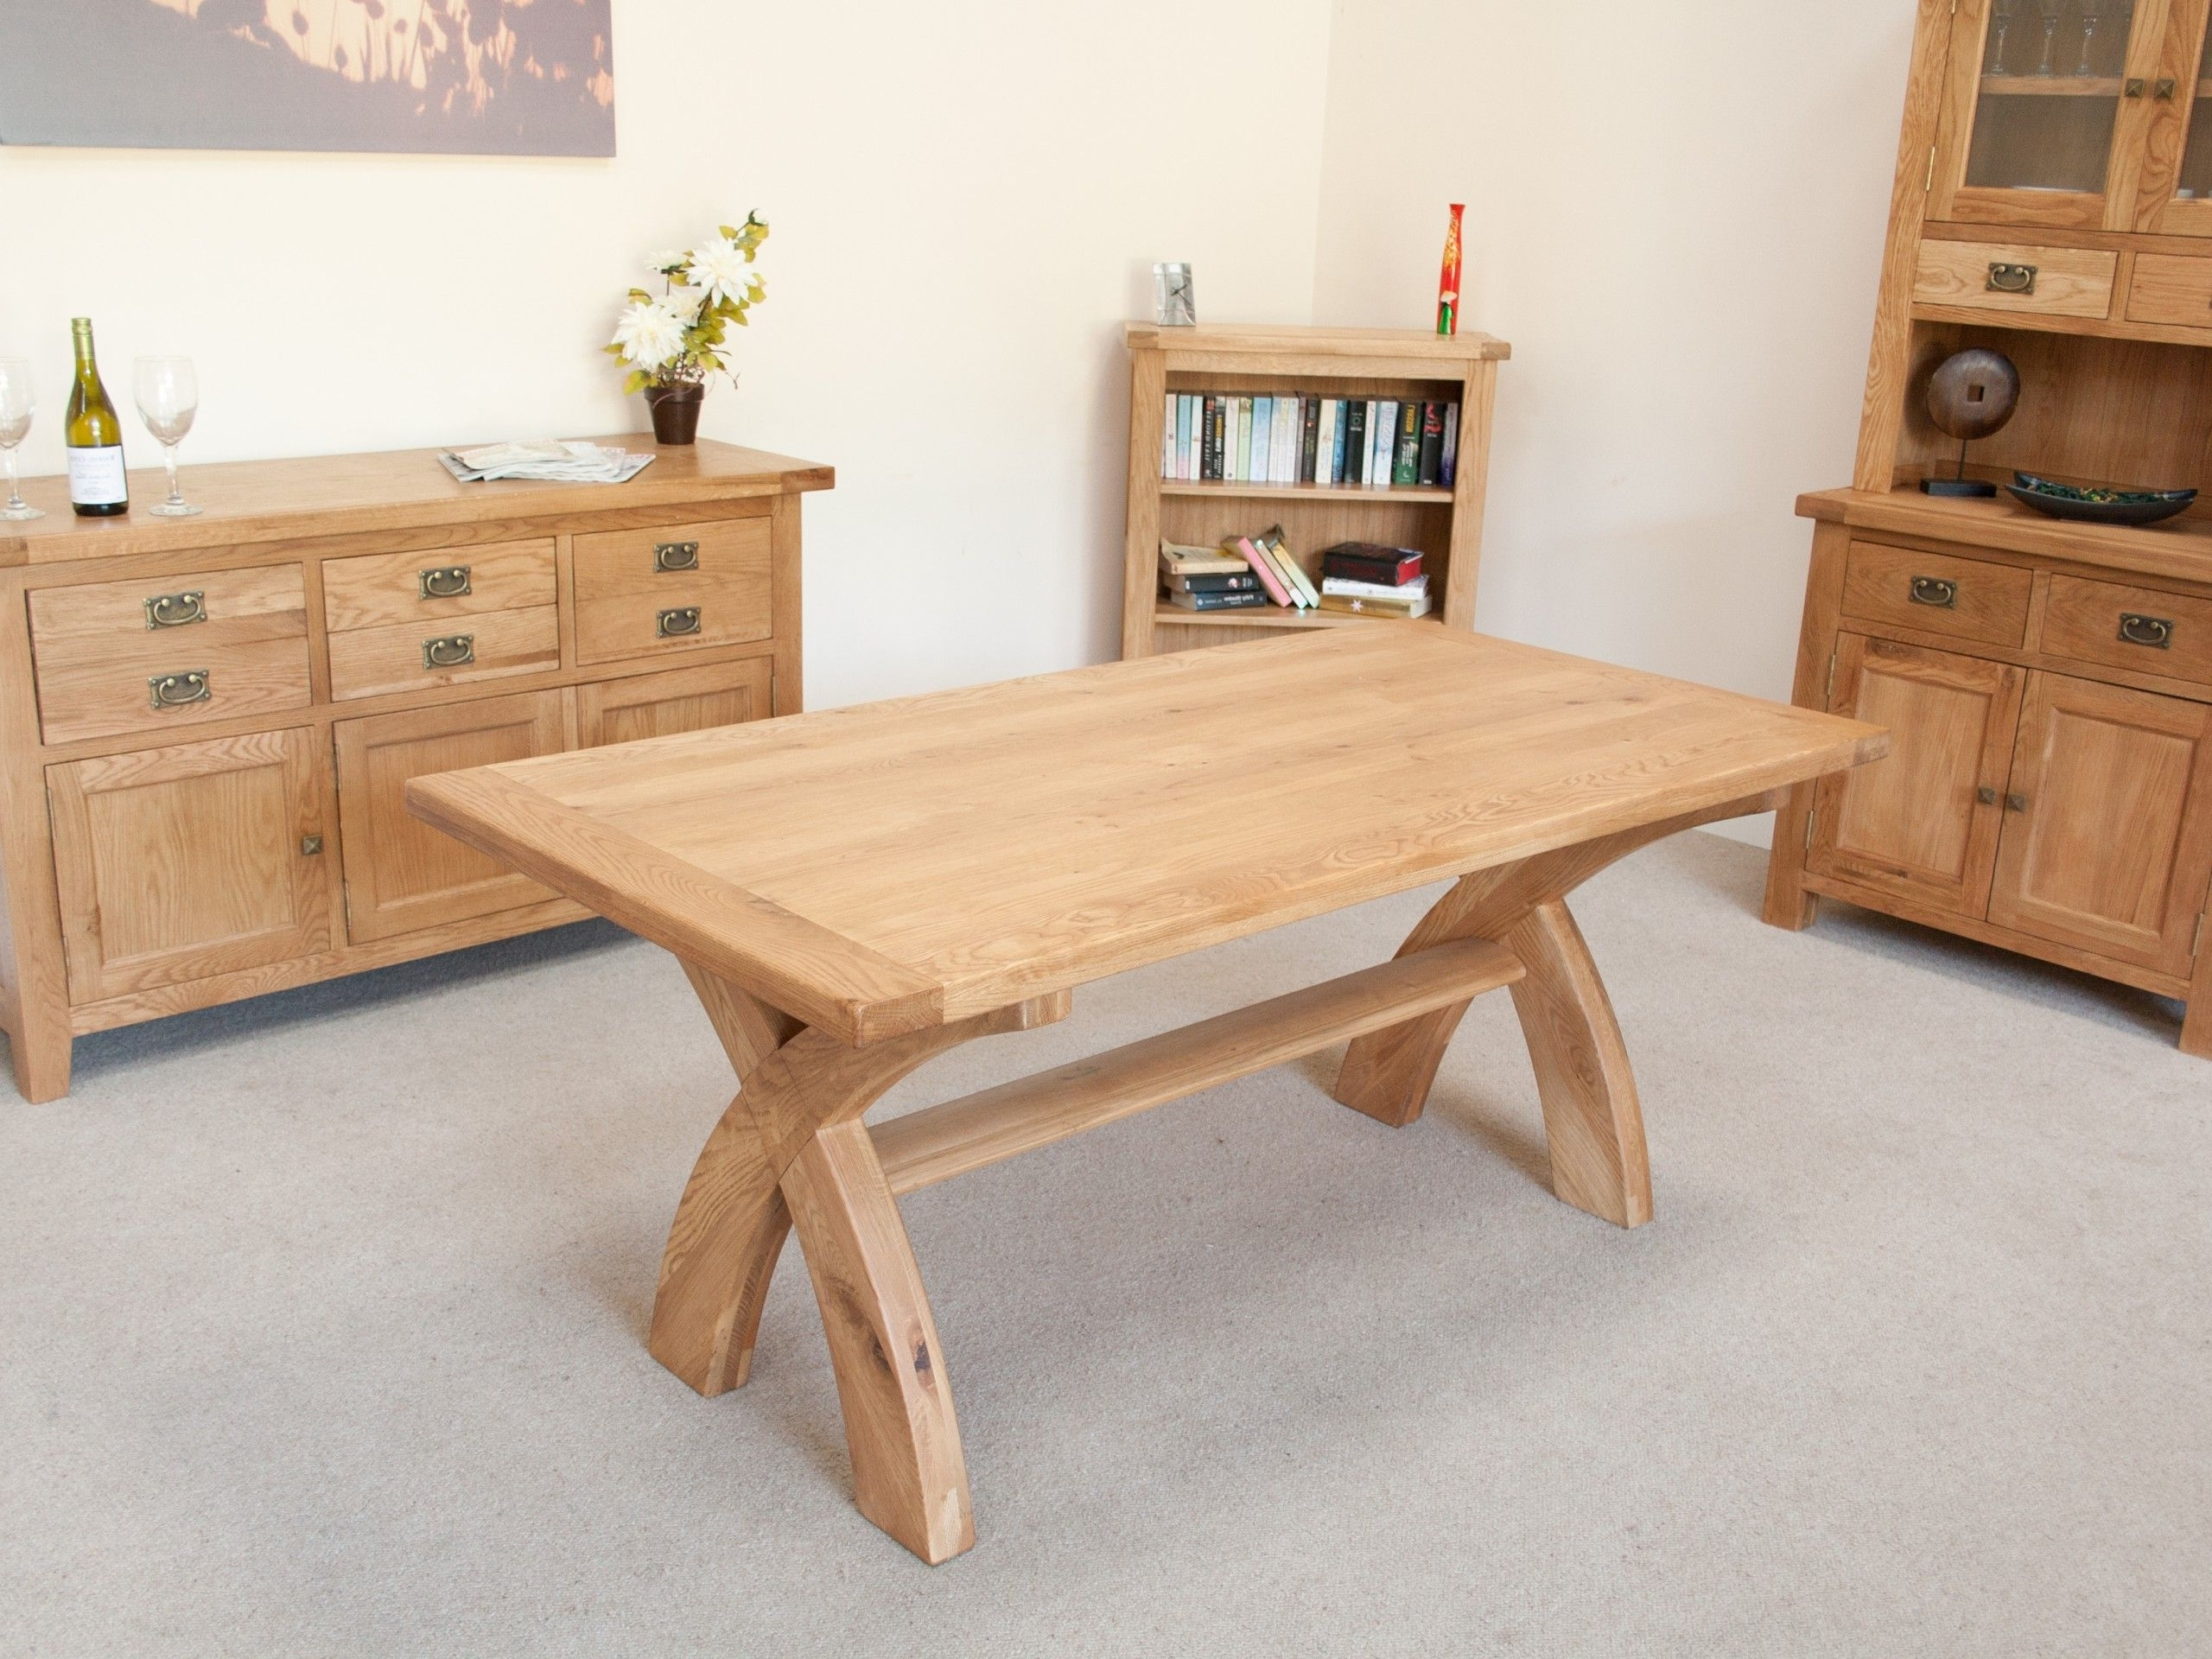 8 Seater Cross Leg Table Intended For Most Recent 8 Seater Oak Dining Tables (View 1 of 25)